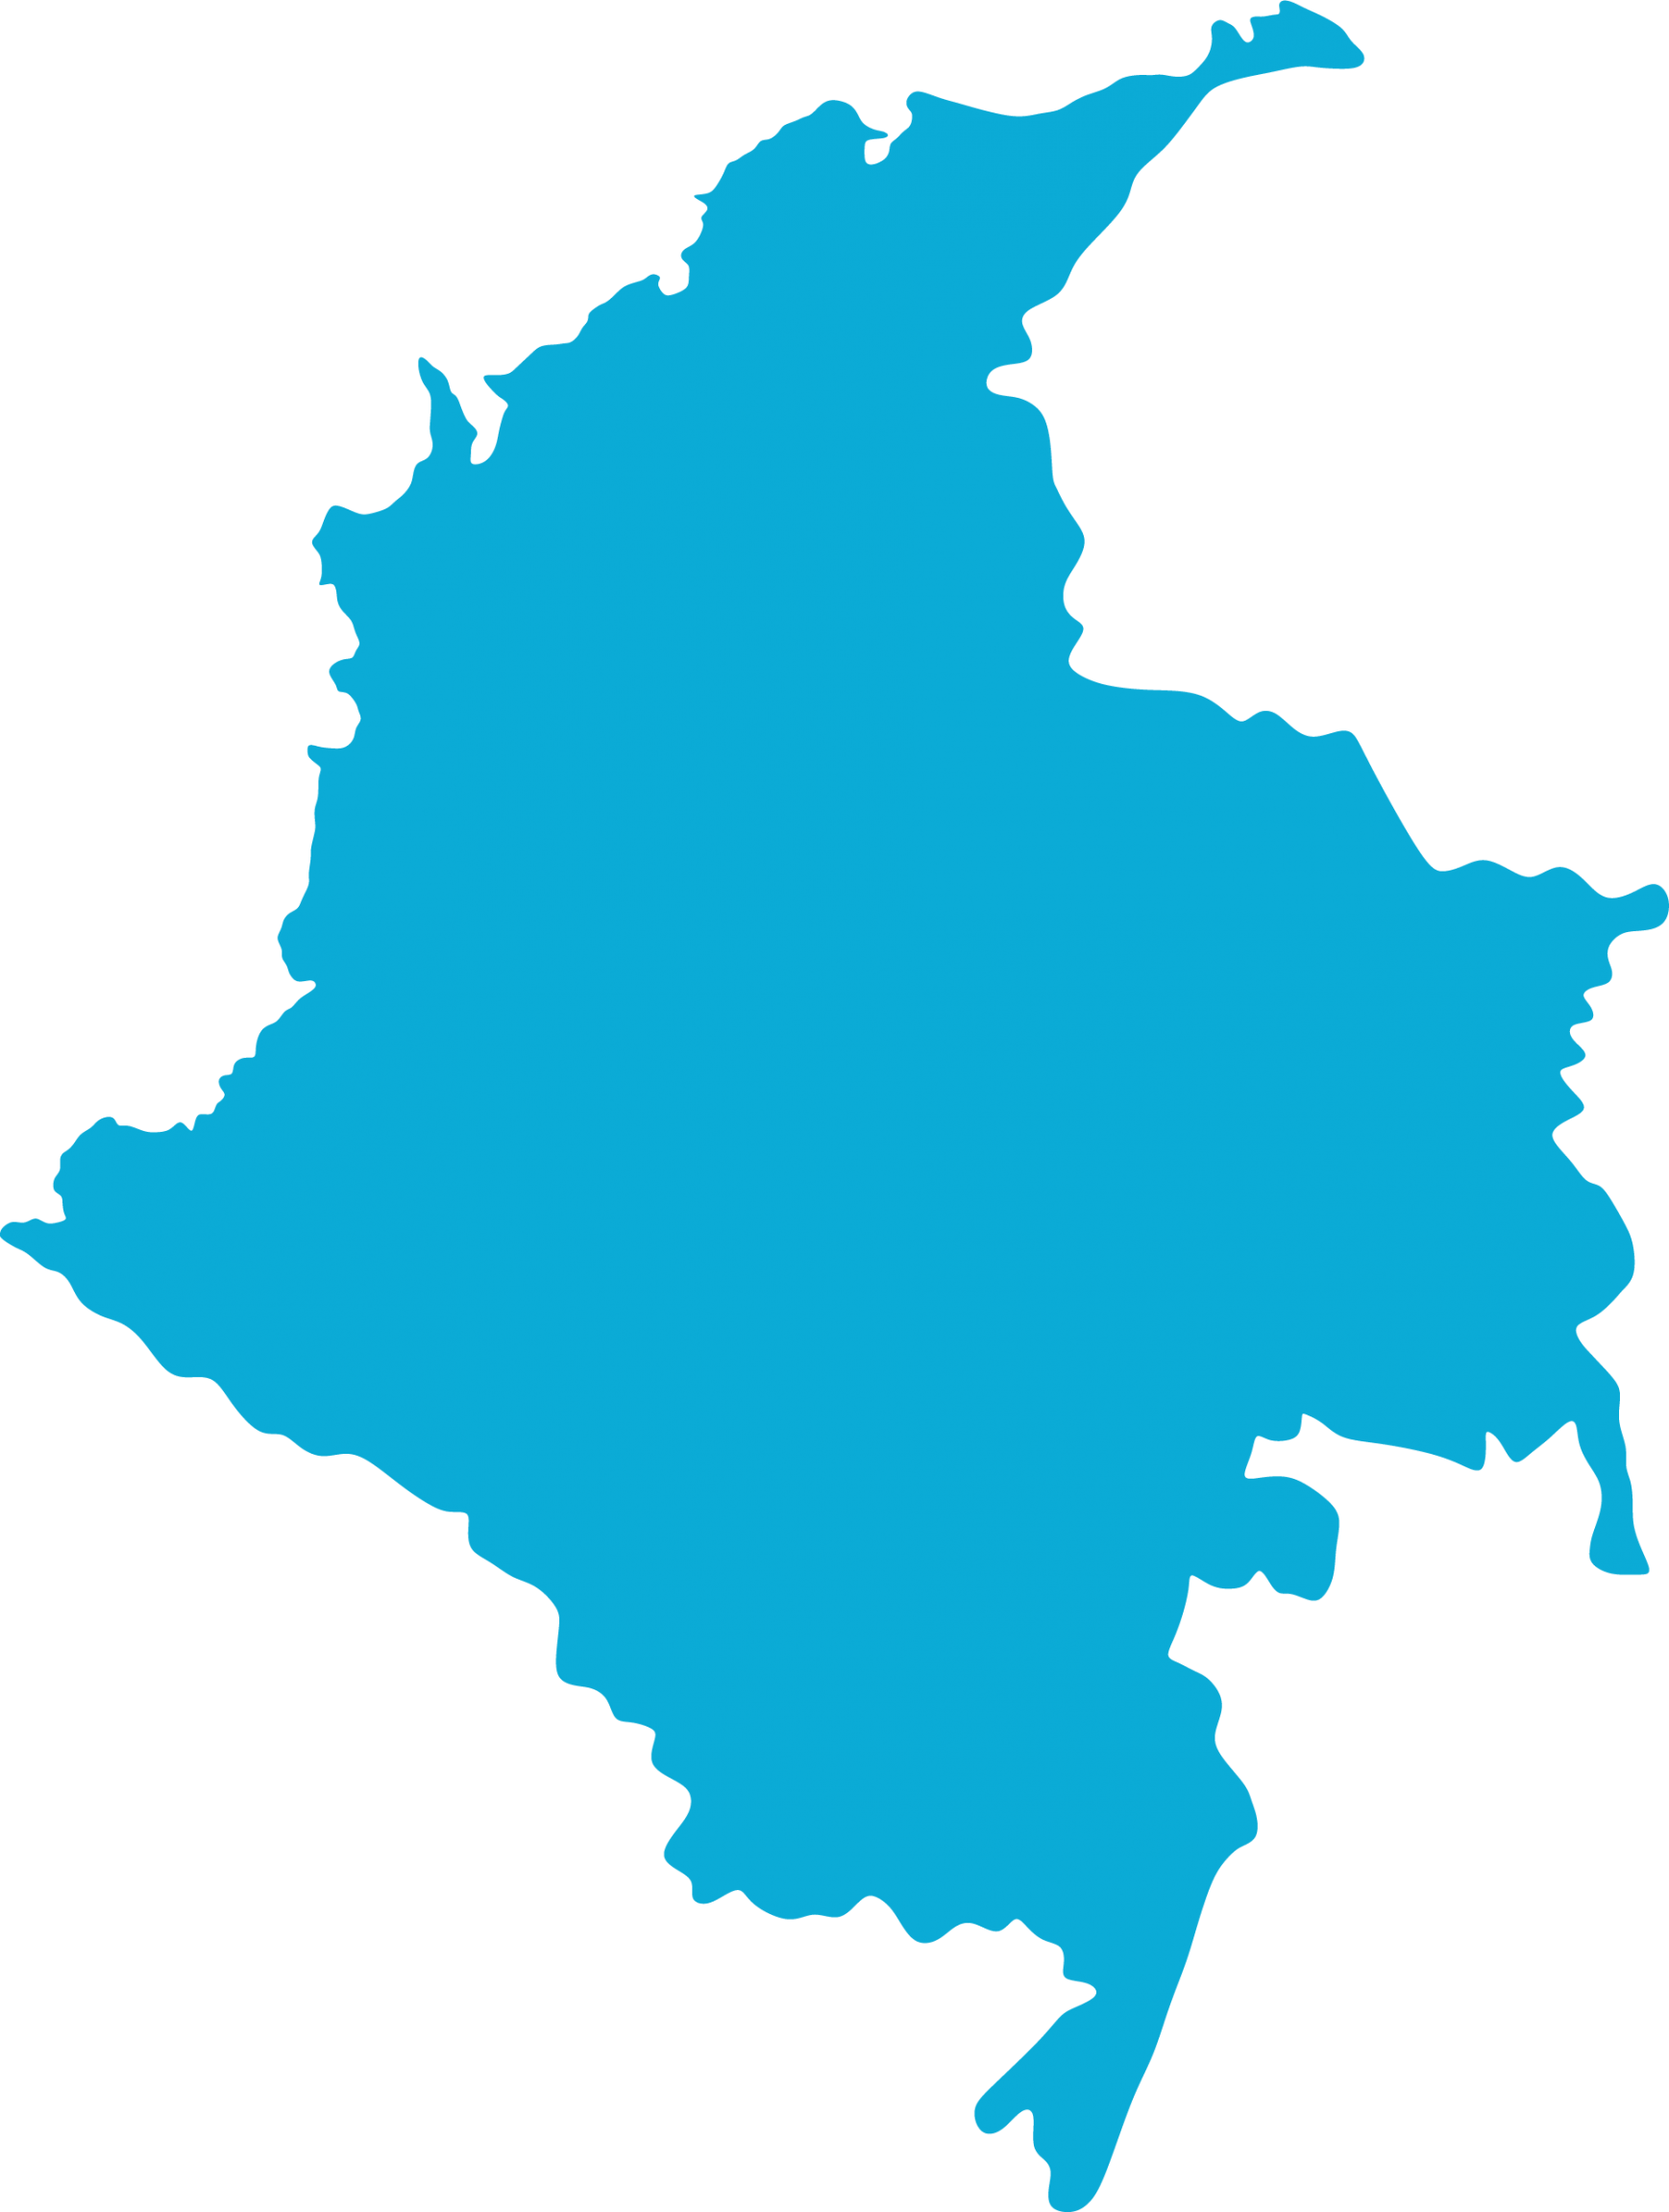 map outline of Colombia